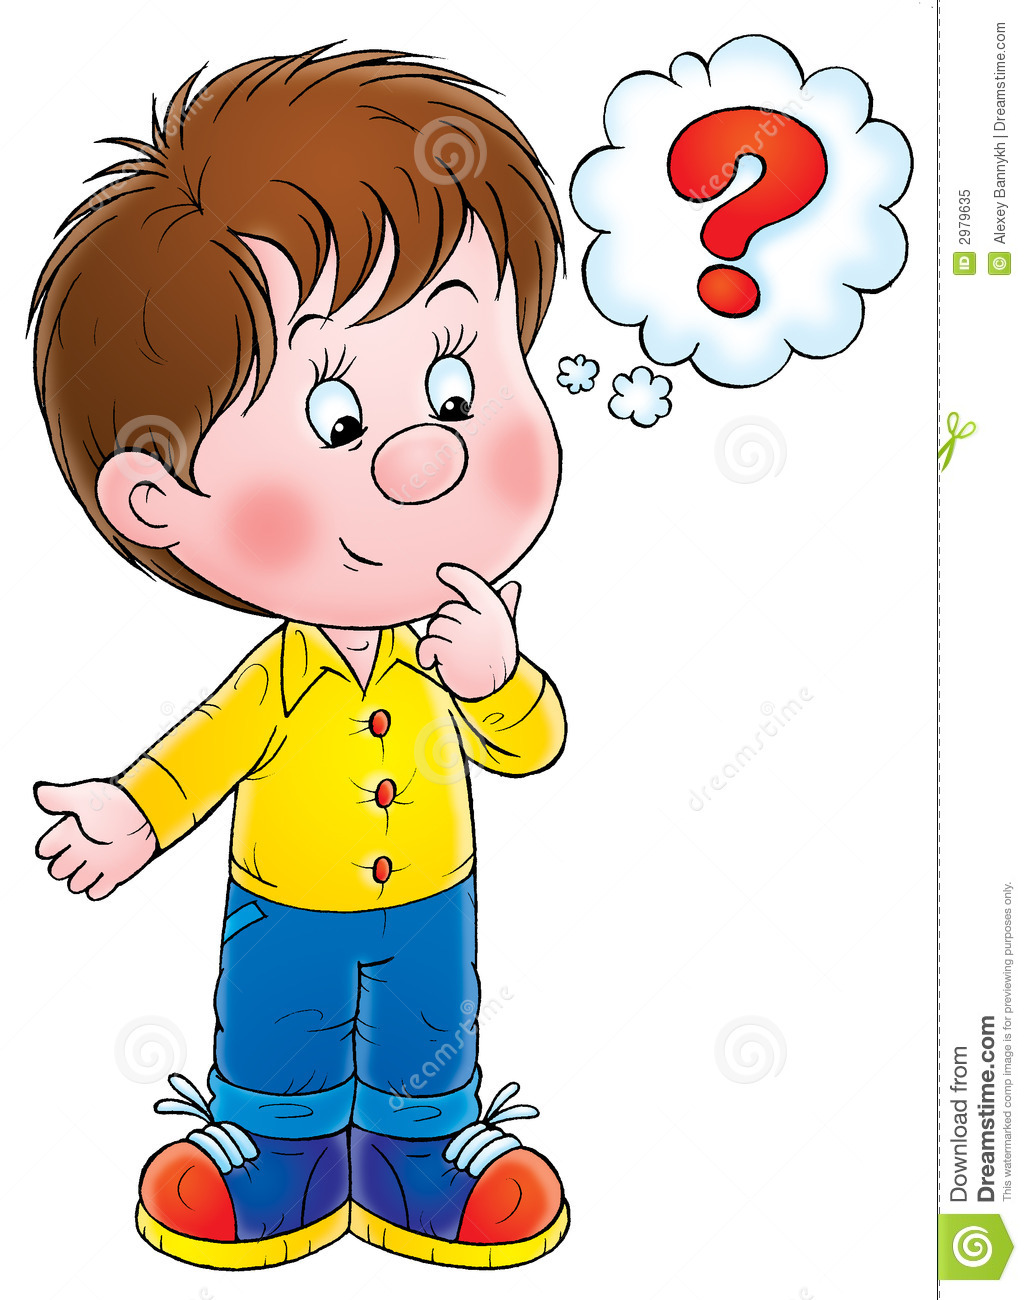 question mark clip art clipart panda free clipart images rh clipartpanda com question clip art images question clip art images